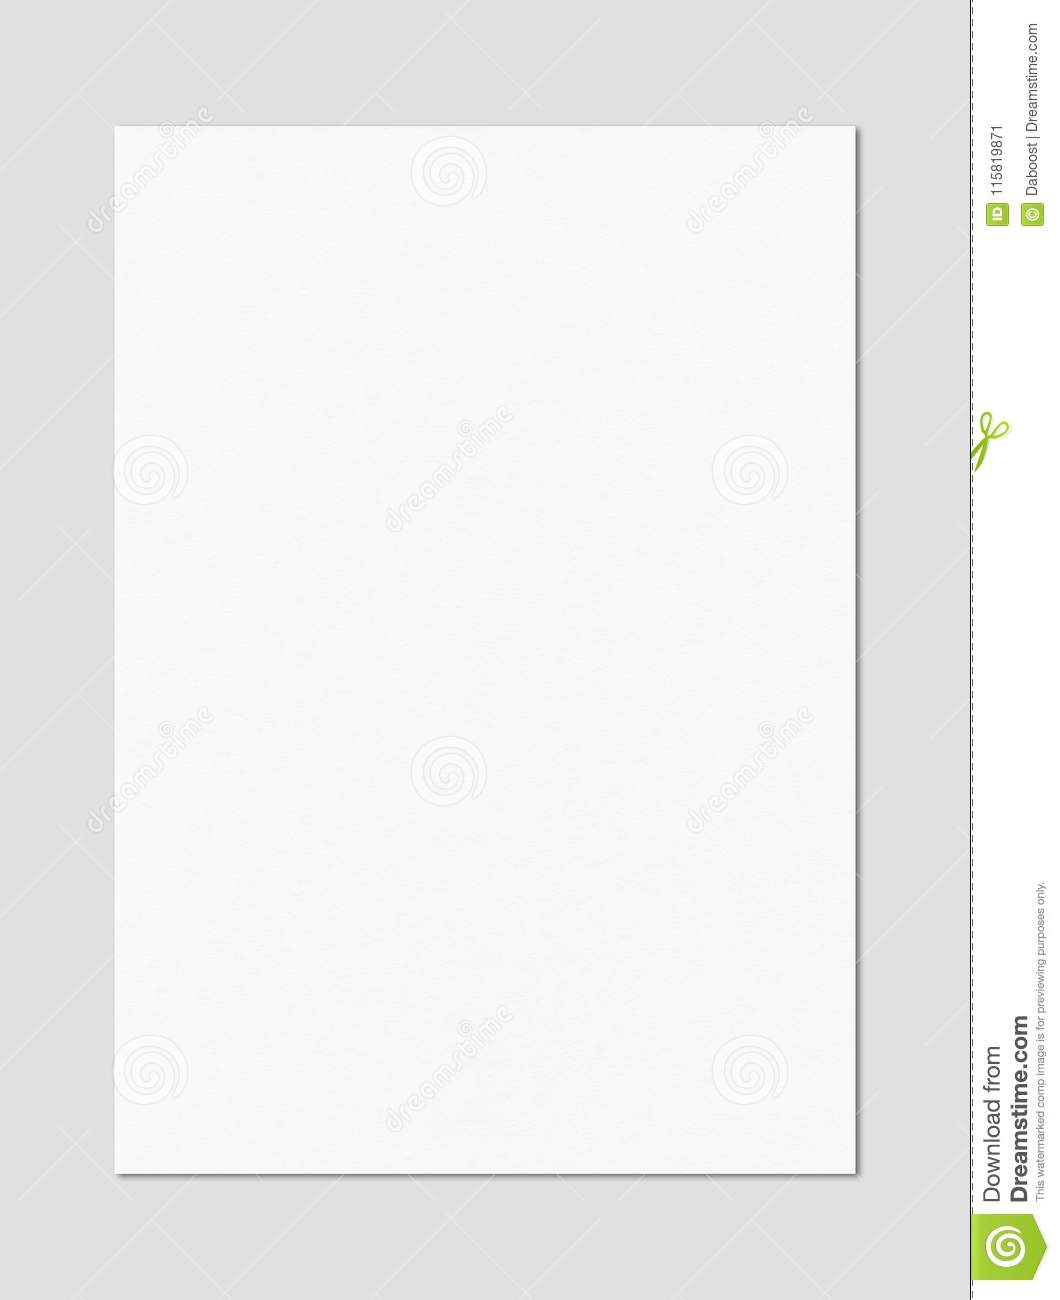 blank white a4 paper sheet mockup template stock image image of